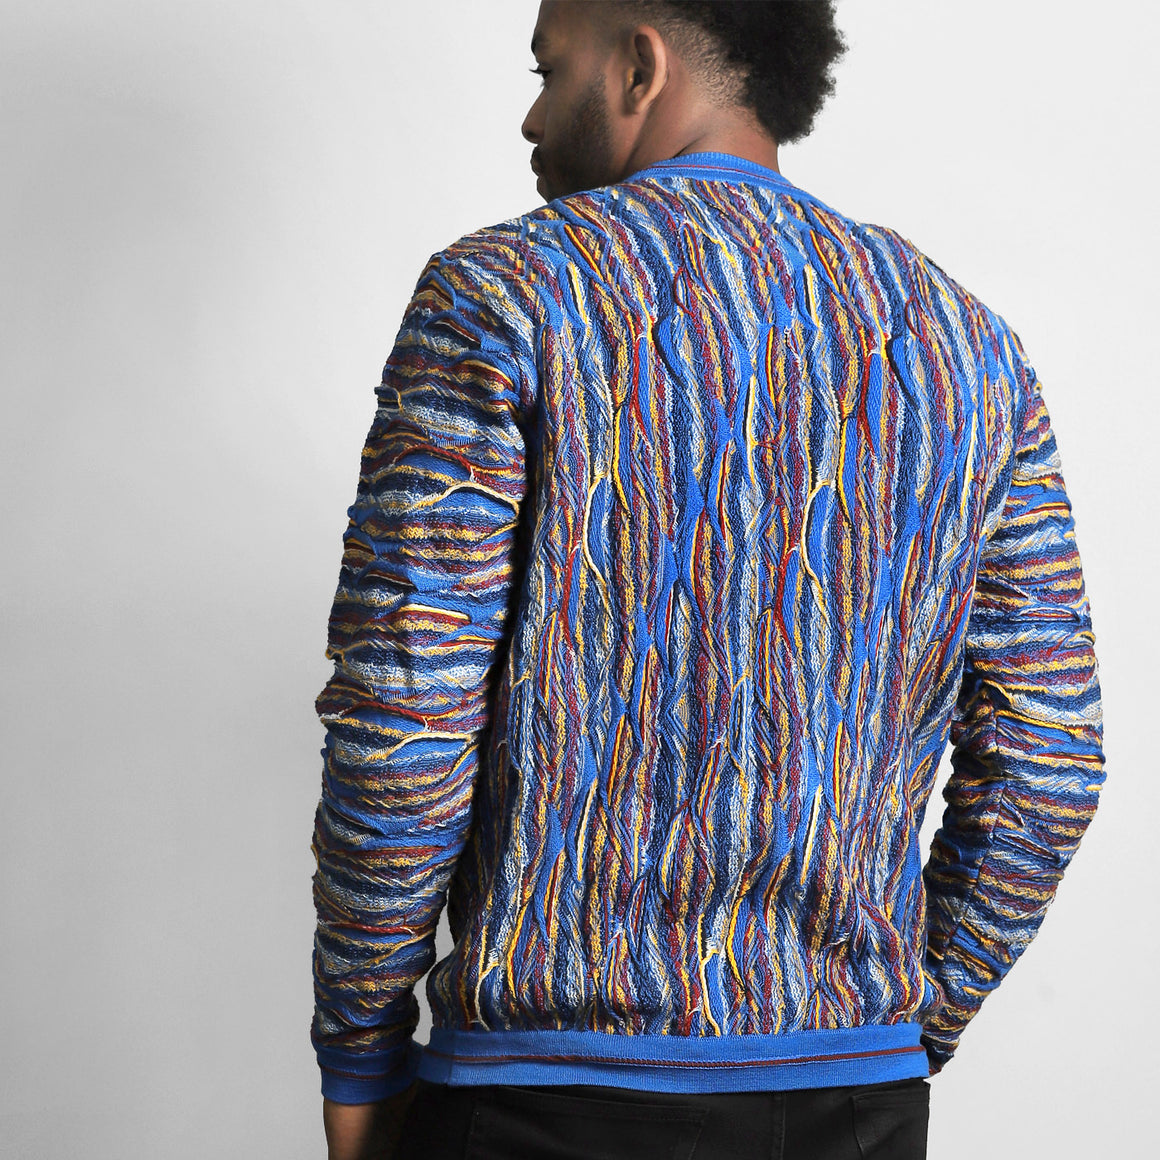 COOGI LONGREEF DEEP BLUE CREWNECK, LIMITED EDITION